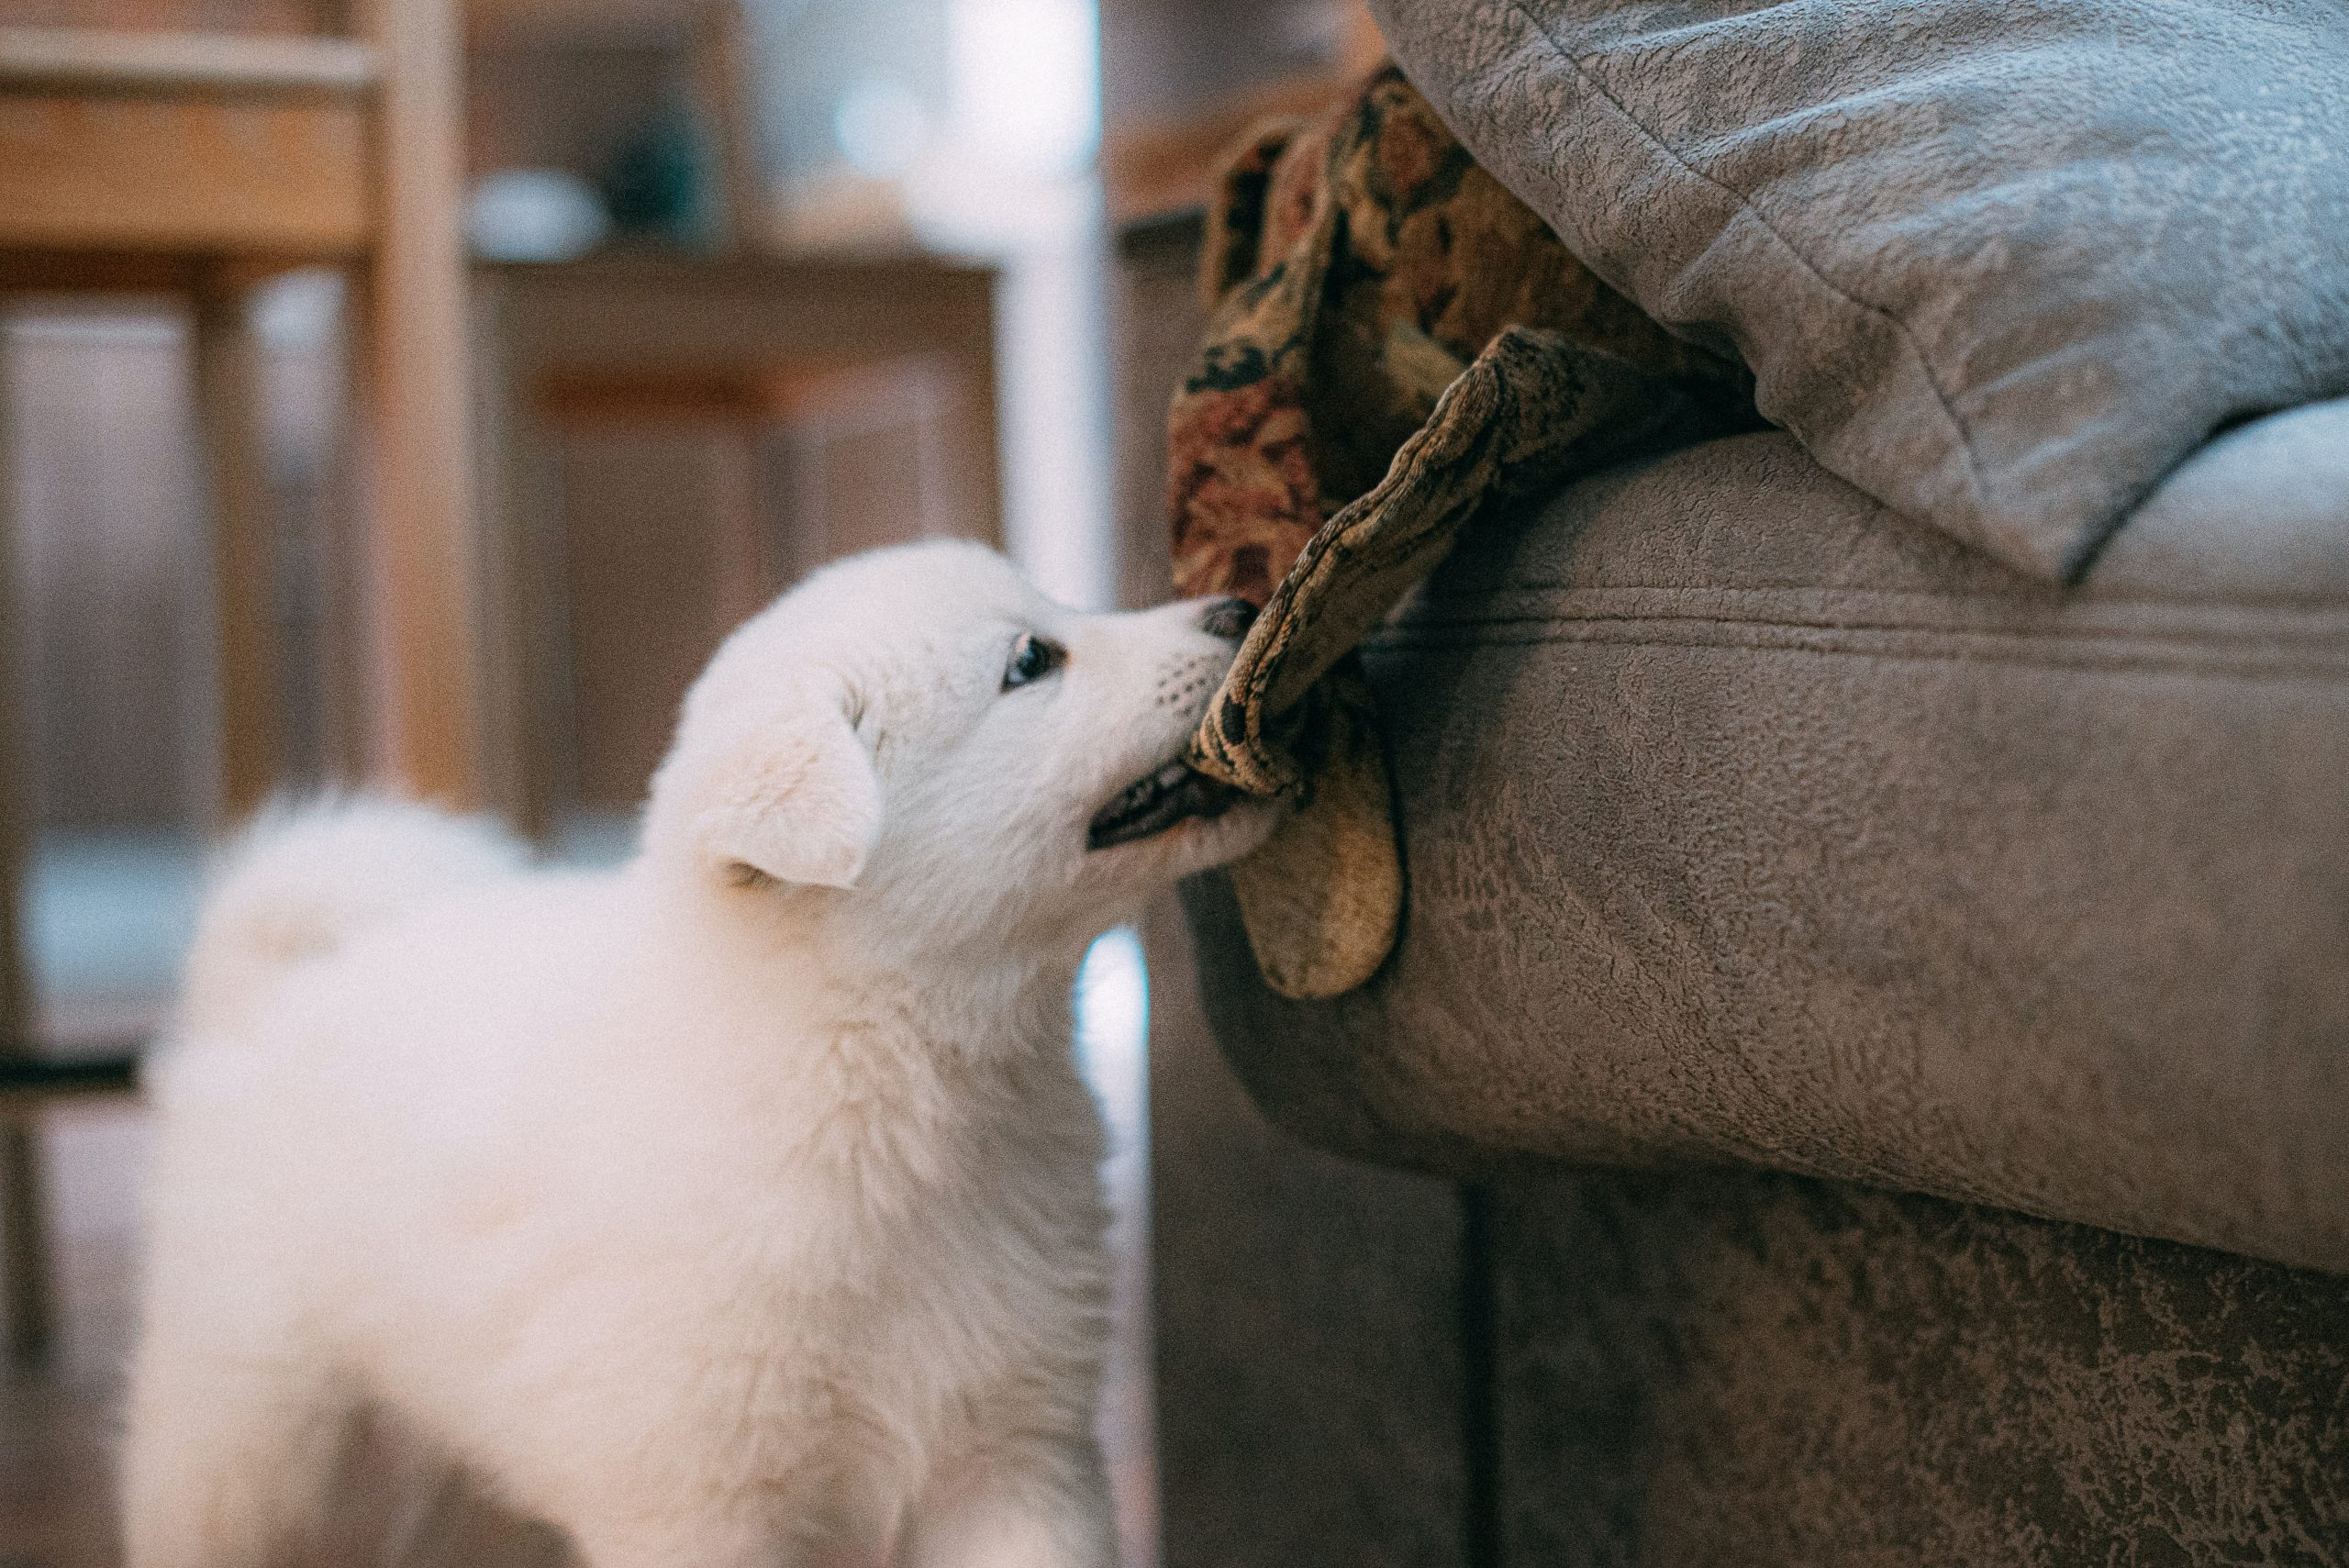 samoyed puppy biting something on the couch